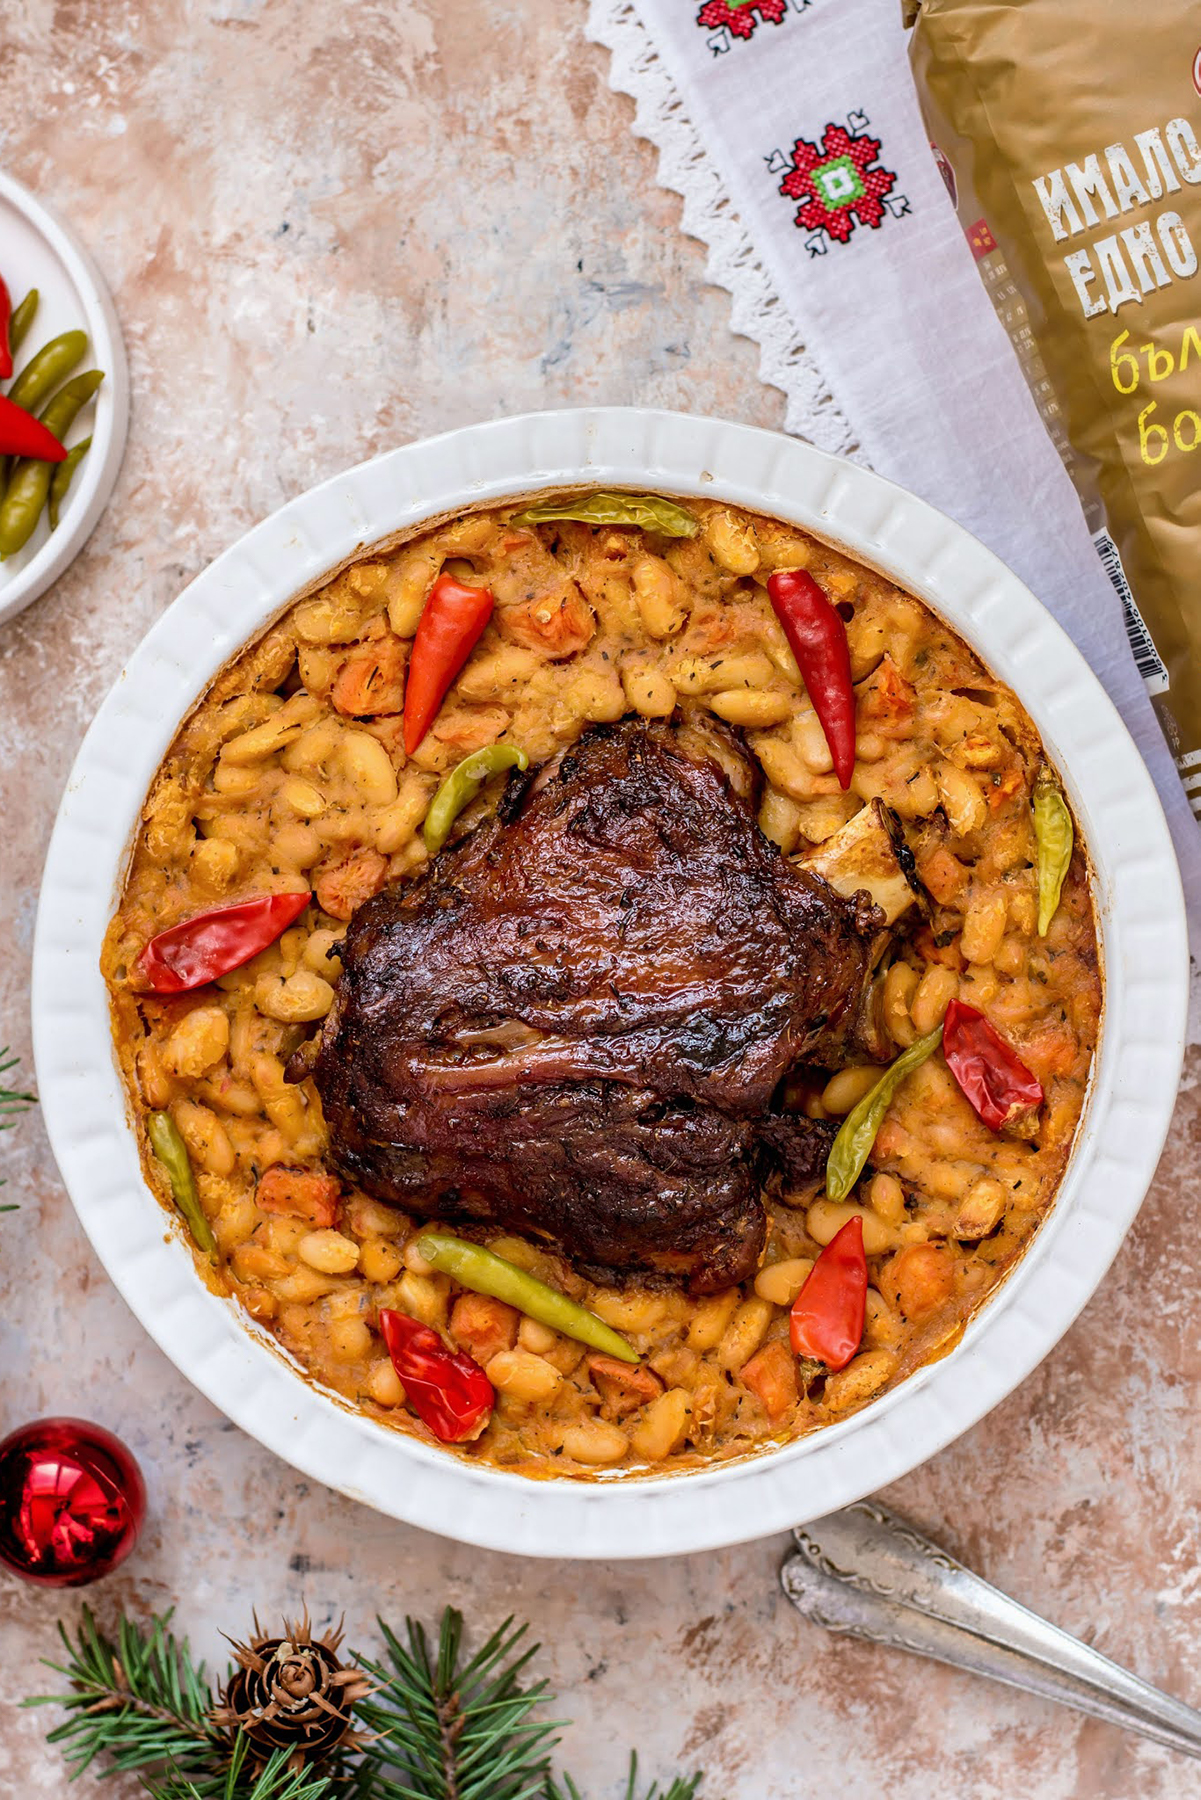 baked beans with pork shank in a baking dish